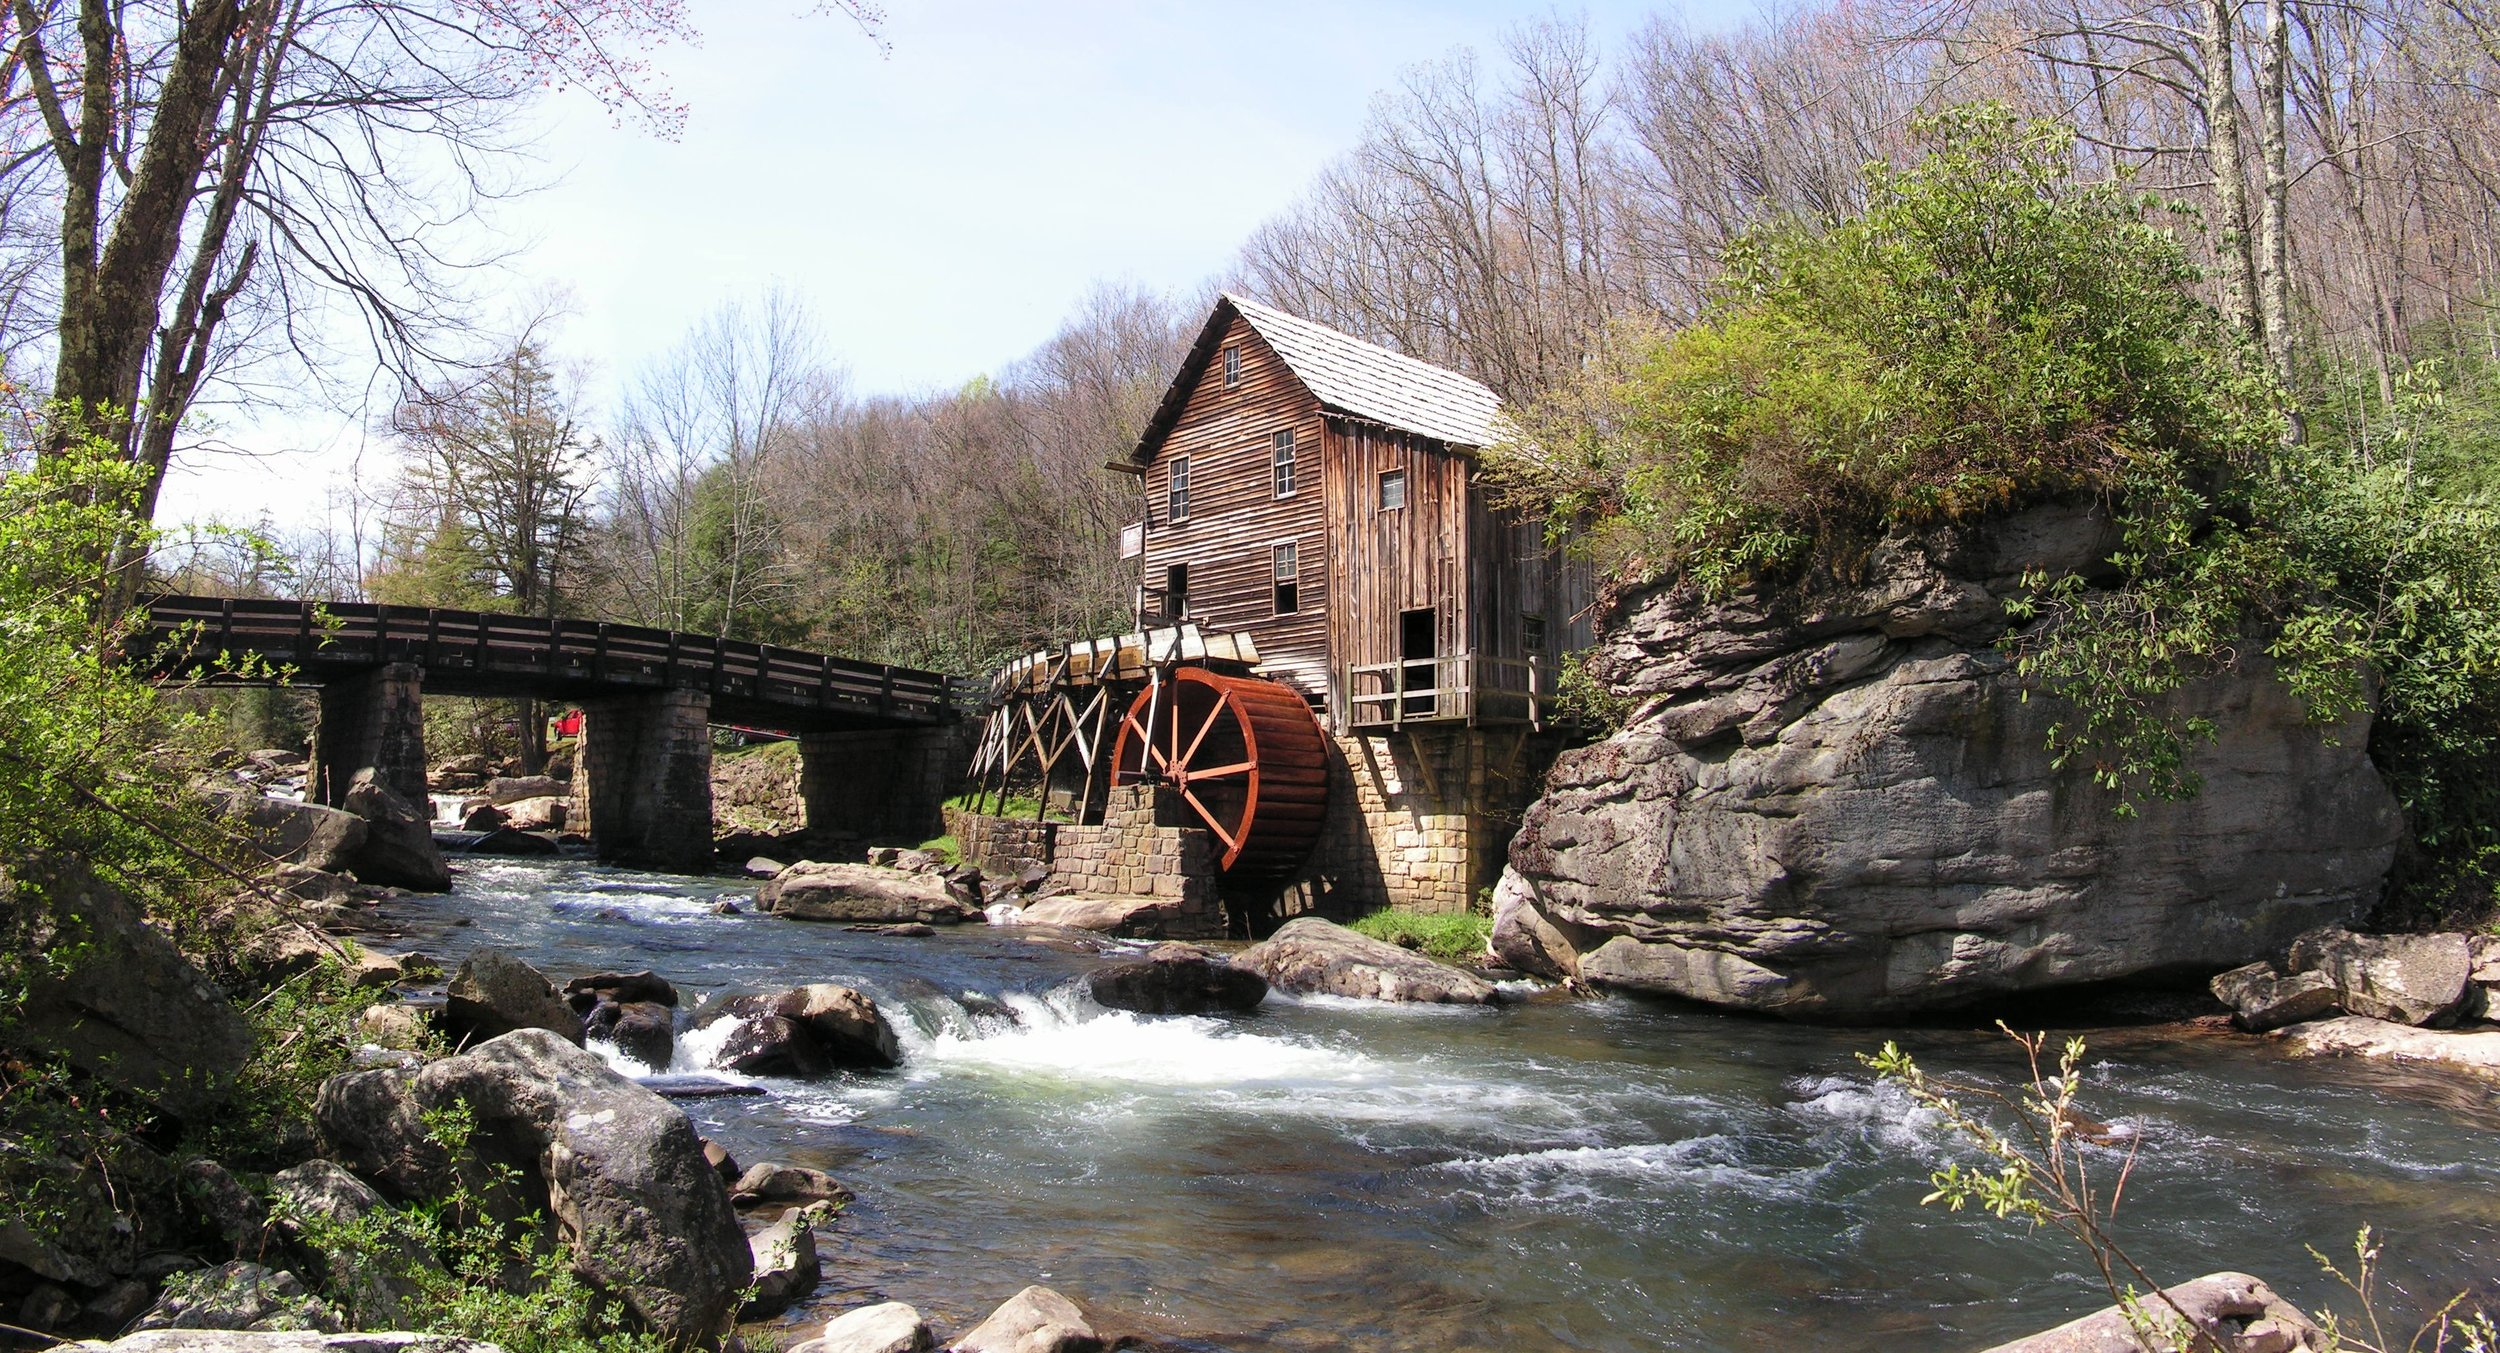 Glade Creek's beautiful water mill in New River Gorge